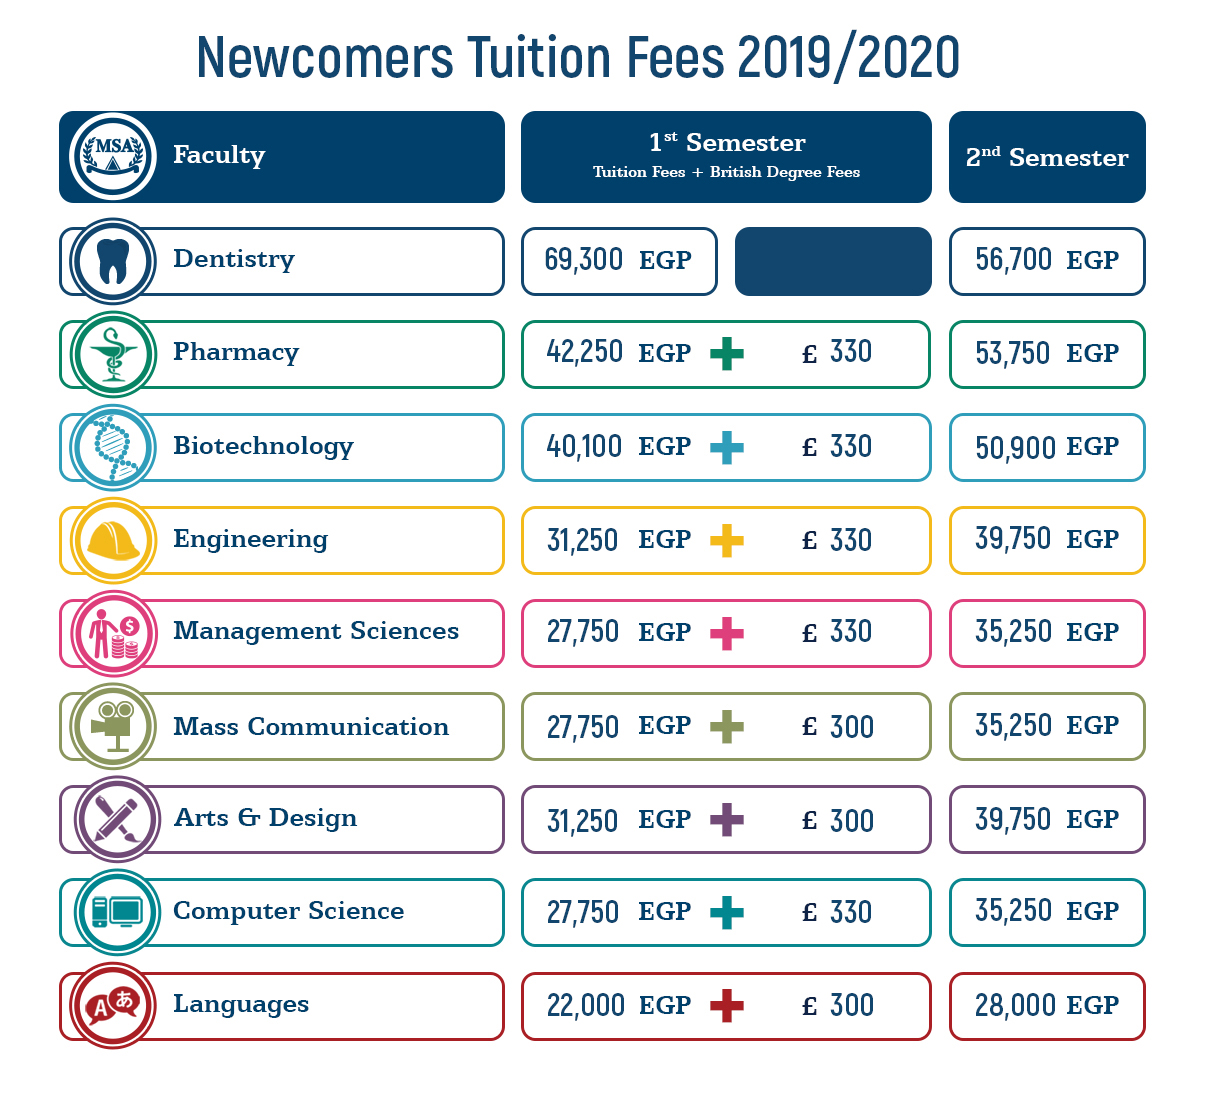 MSA University - Tuition Fees 2019-2020